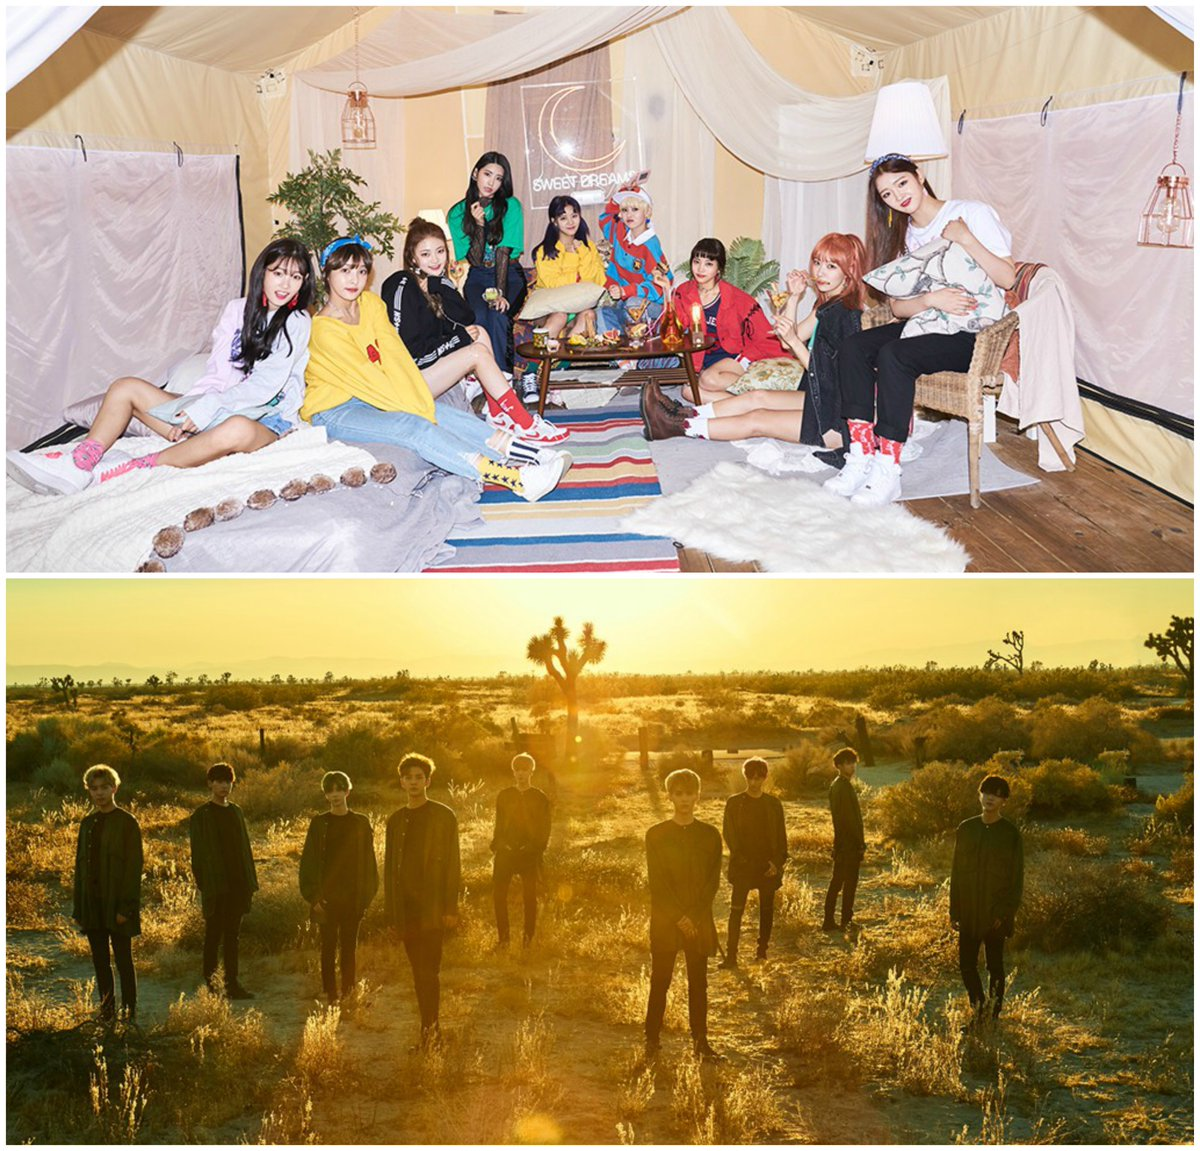 [#MCOUNTDOWN] Coming Up Next: @dia_official vs @SF9official vs #BolBBalgan4!  Whose stage is ur fav.?  Watch on-air http:// bit.ly/2yyP3ho  &nbsp;  <br>http://pic.twitter.com/7bKVTY9mz4